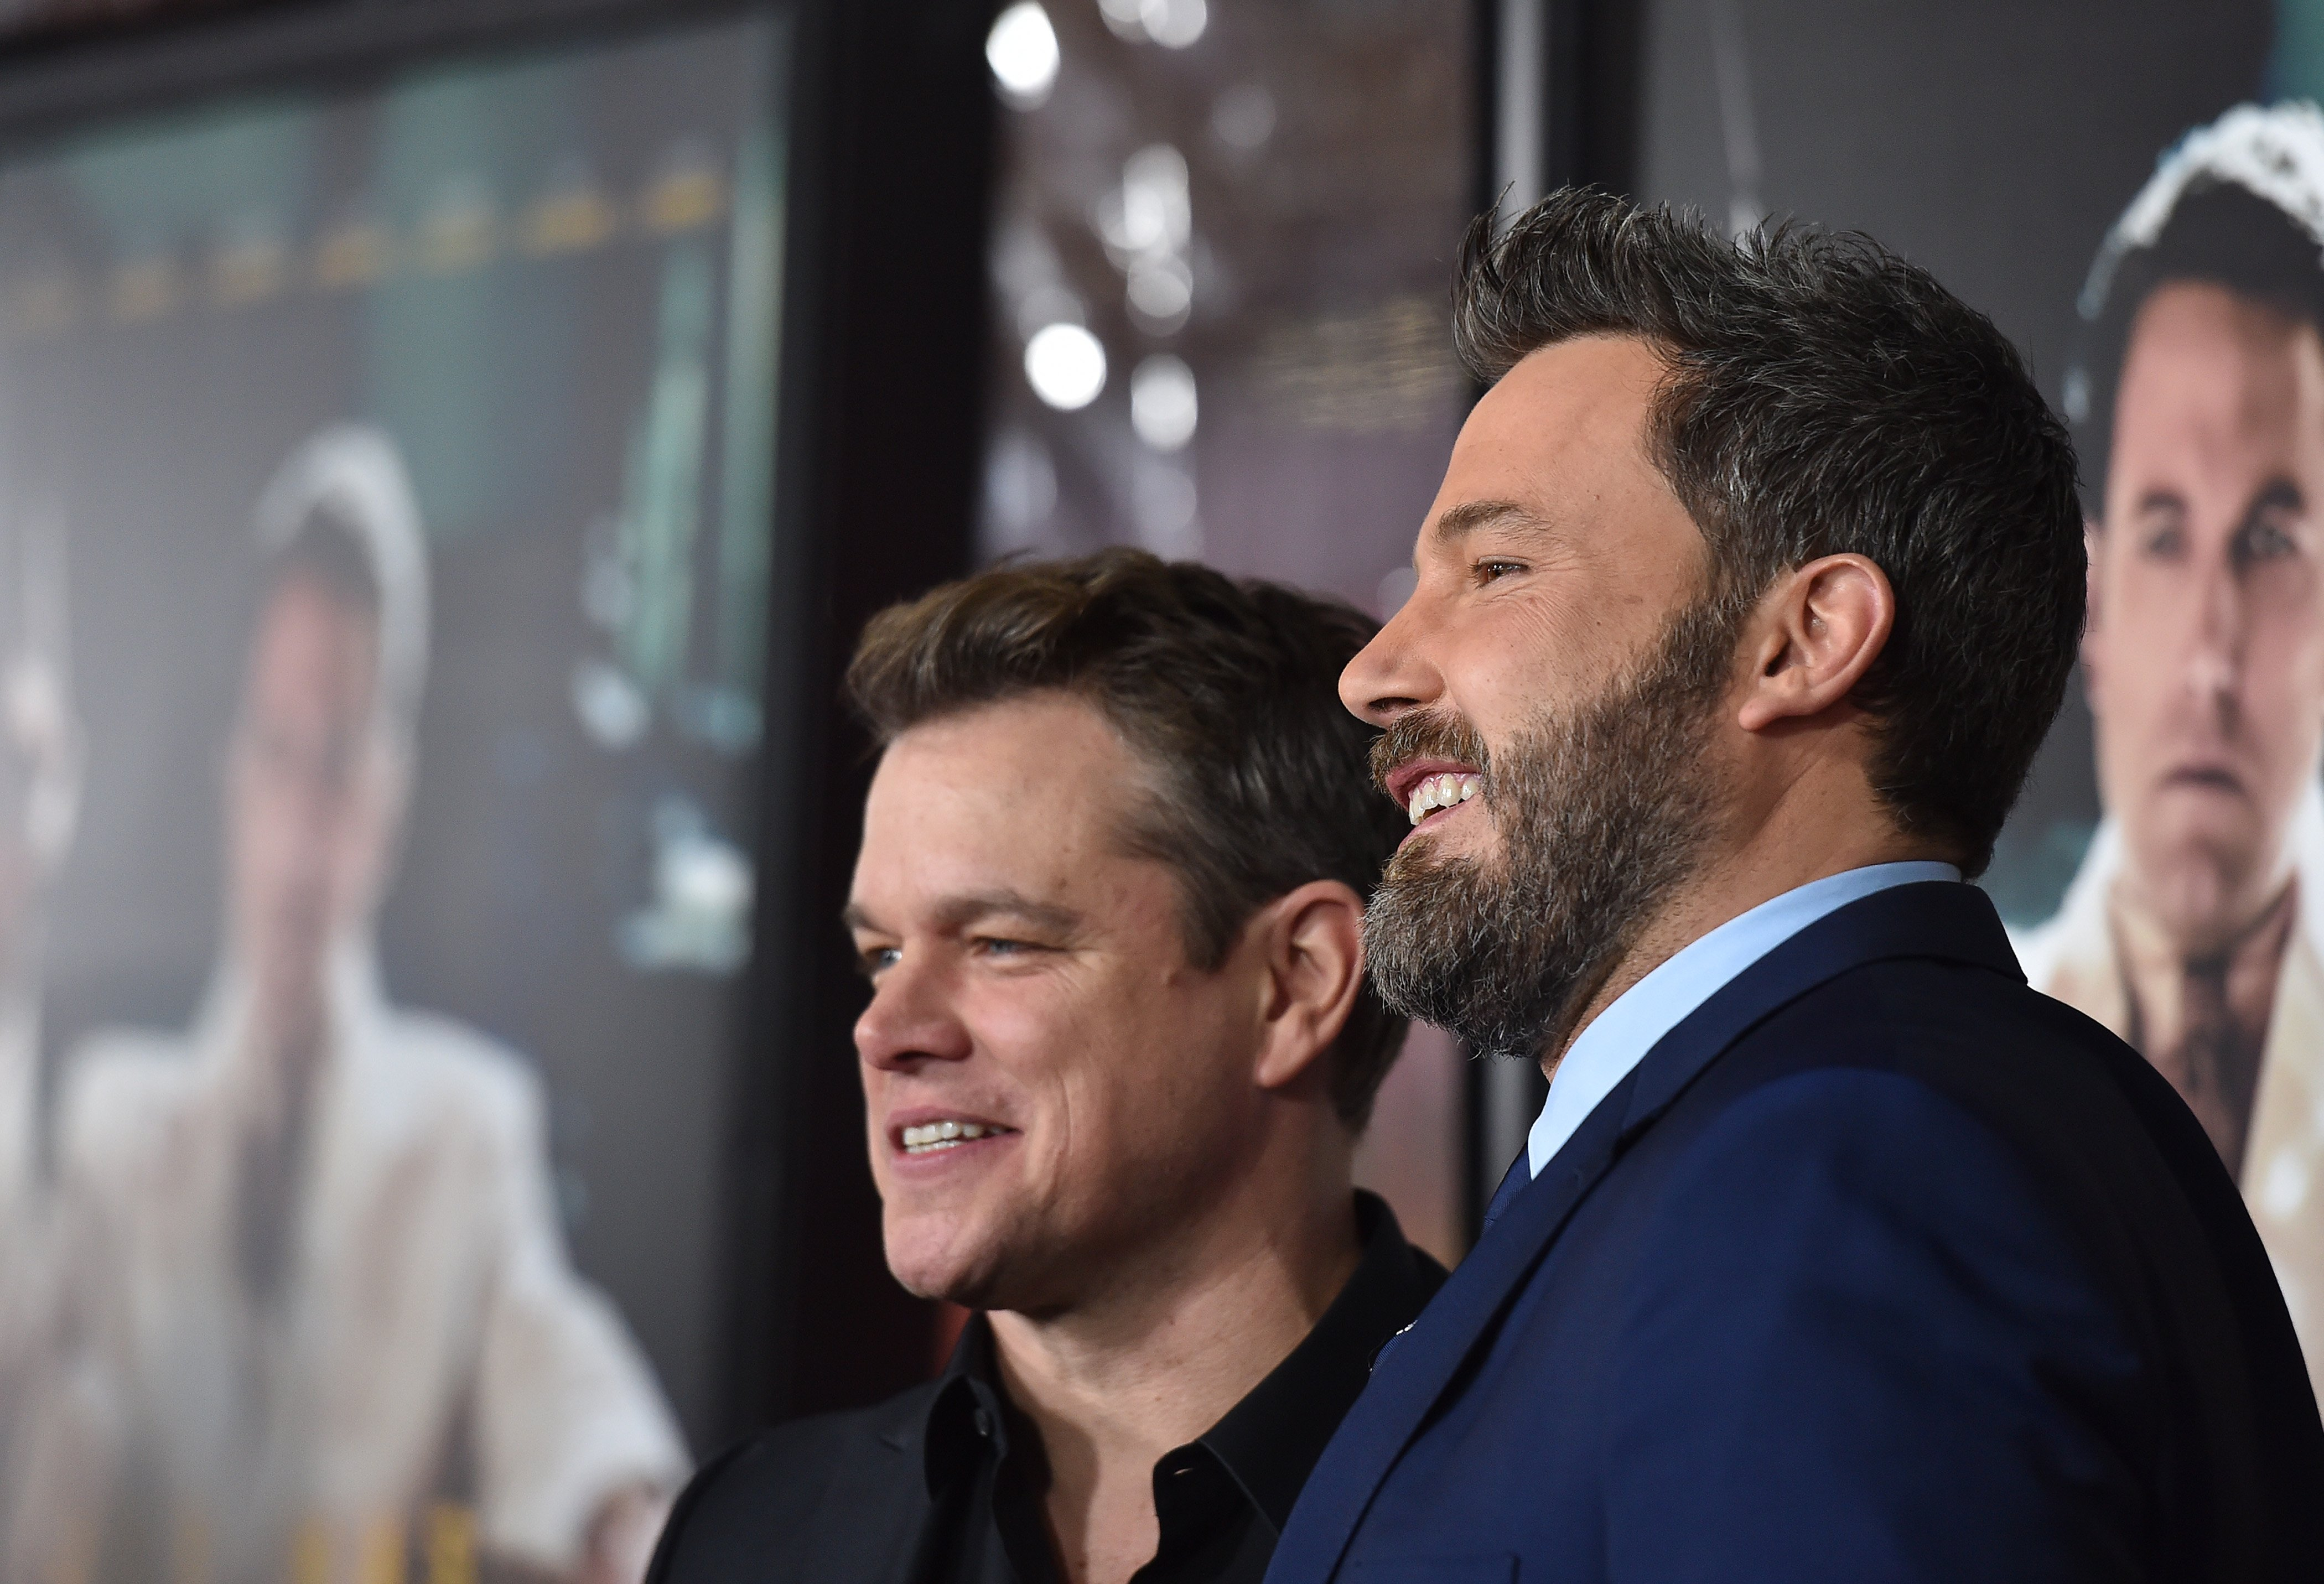 Matt Damon and Ben Affleck at the premiere of 'Live By Night' at TCL Chinese Theatre in Hollywood, California | Photo: Axelle/Bauer-Griffin/FilmMagic via Getty Images